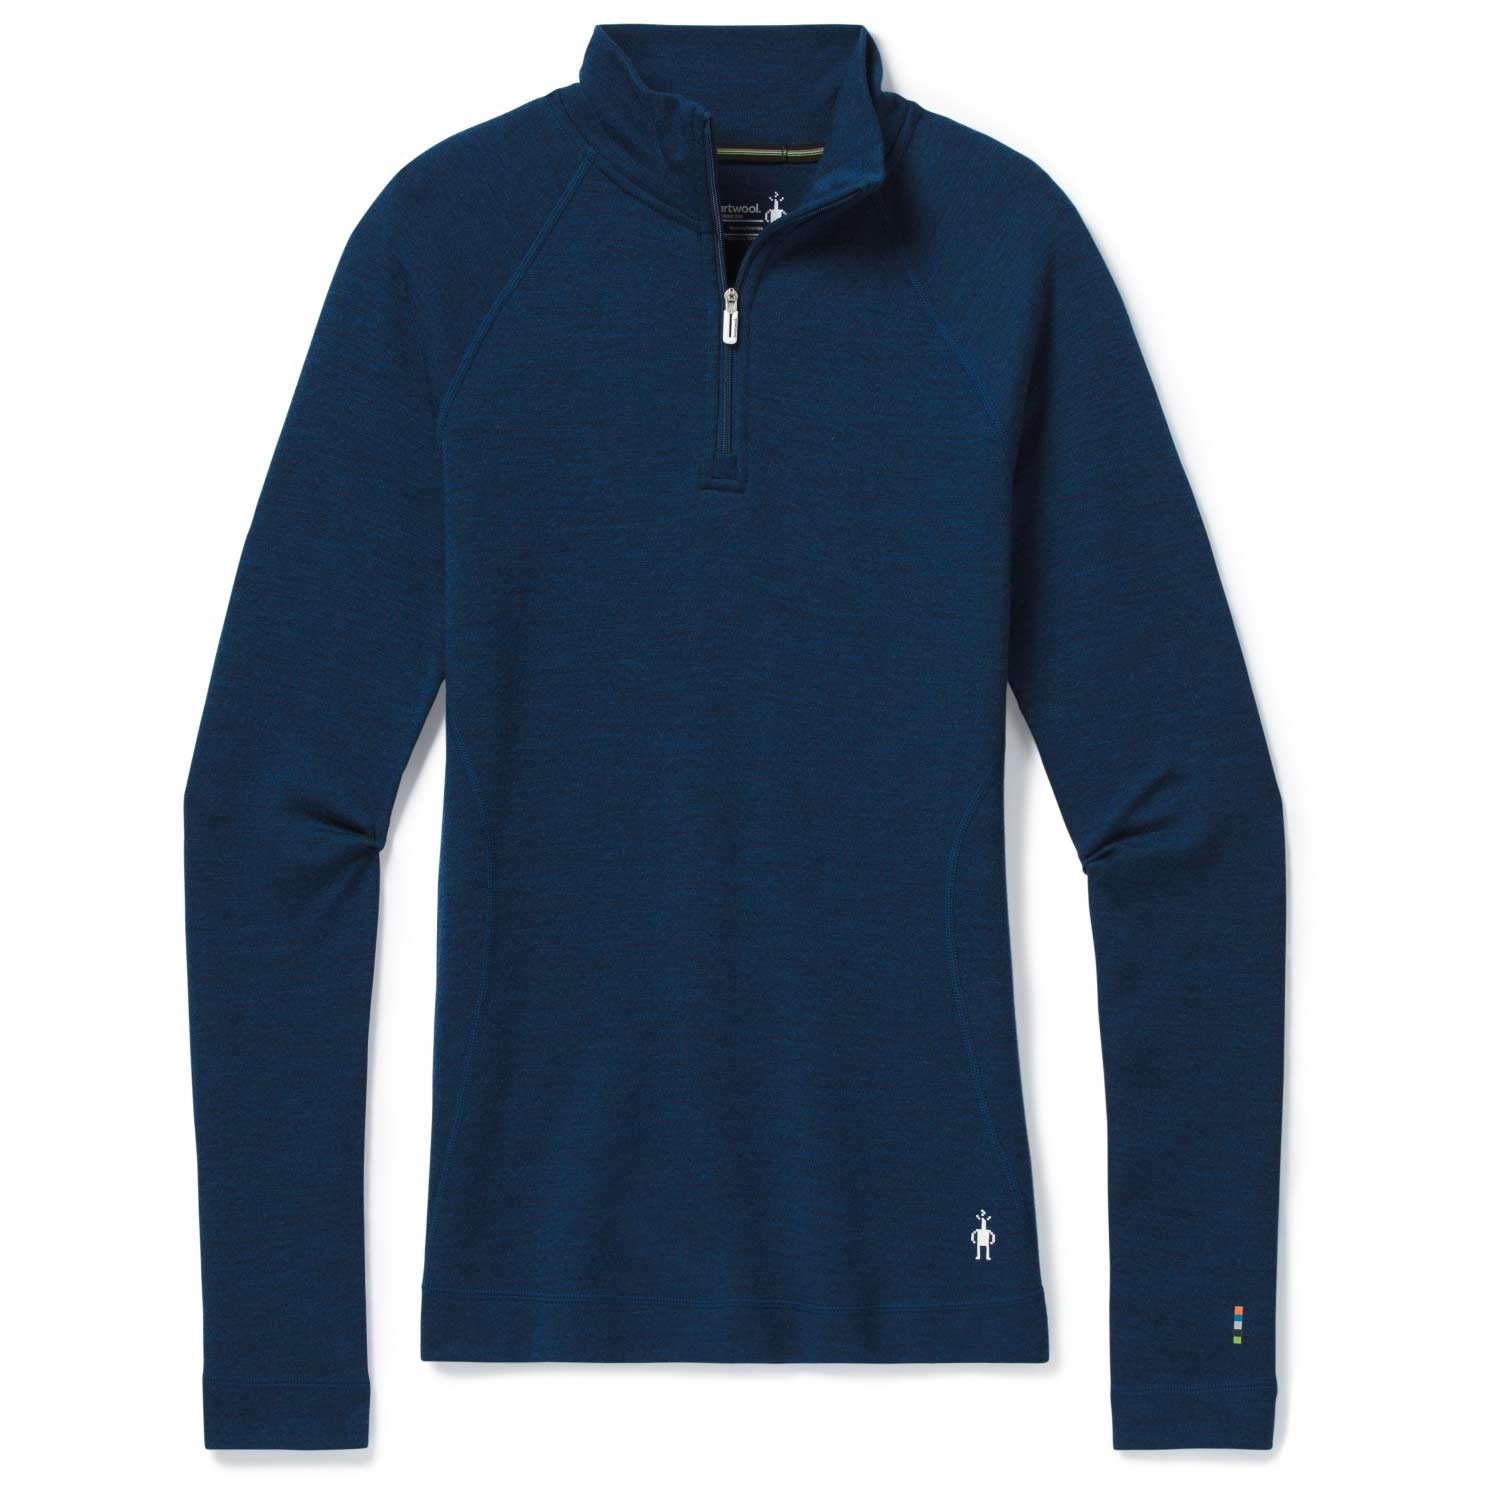 Smartwool Merino 250 Baselayer Women's 1/4 Zip - Alpine Blue Heather